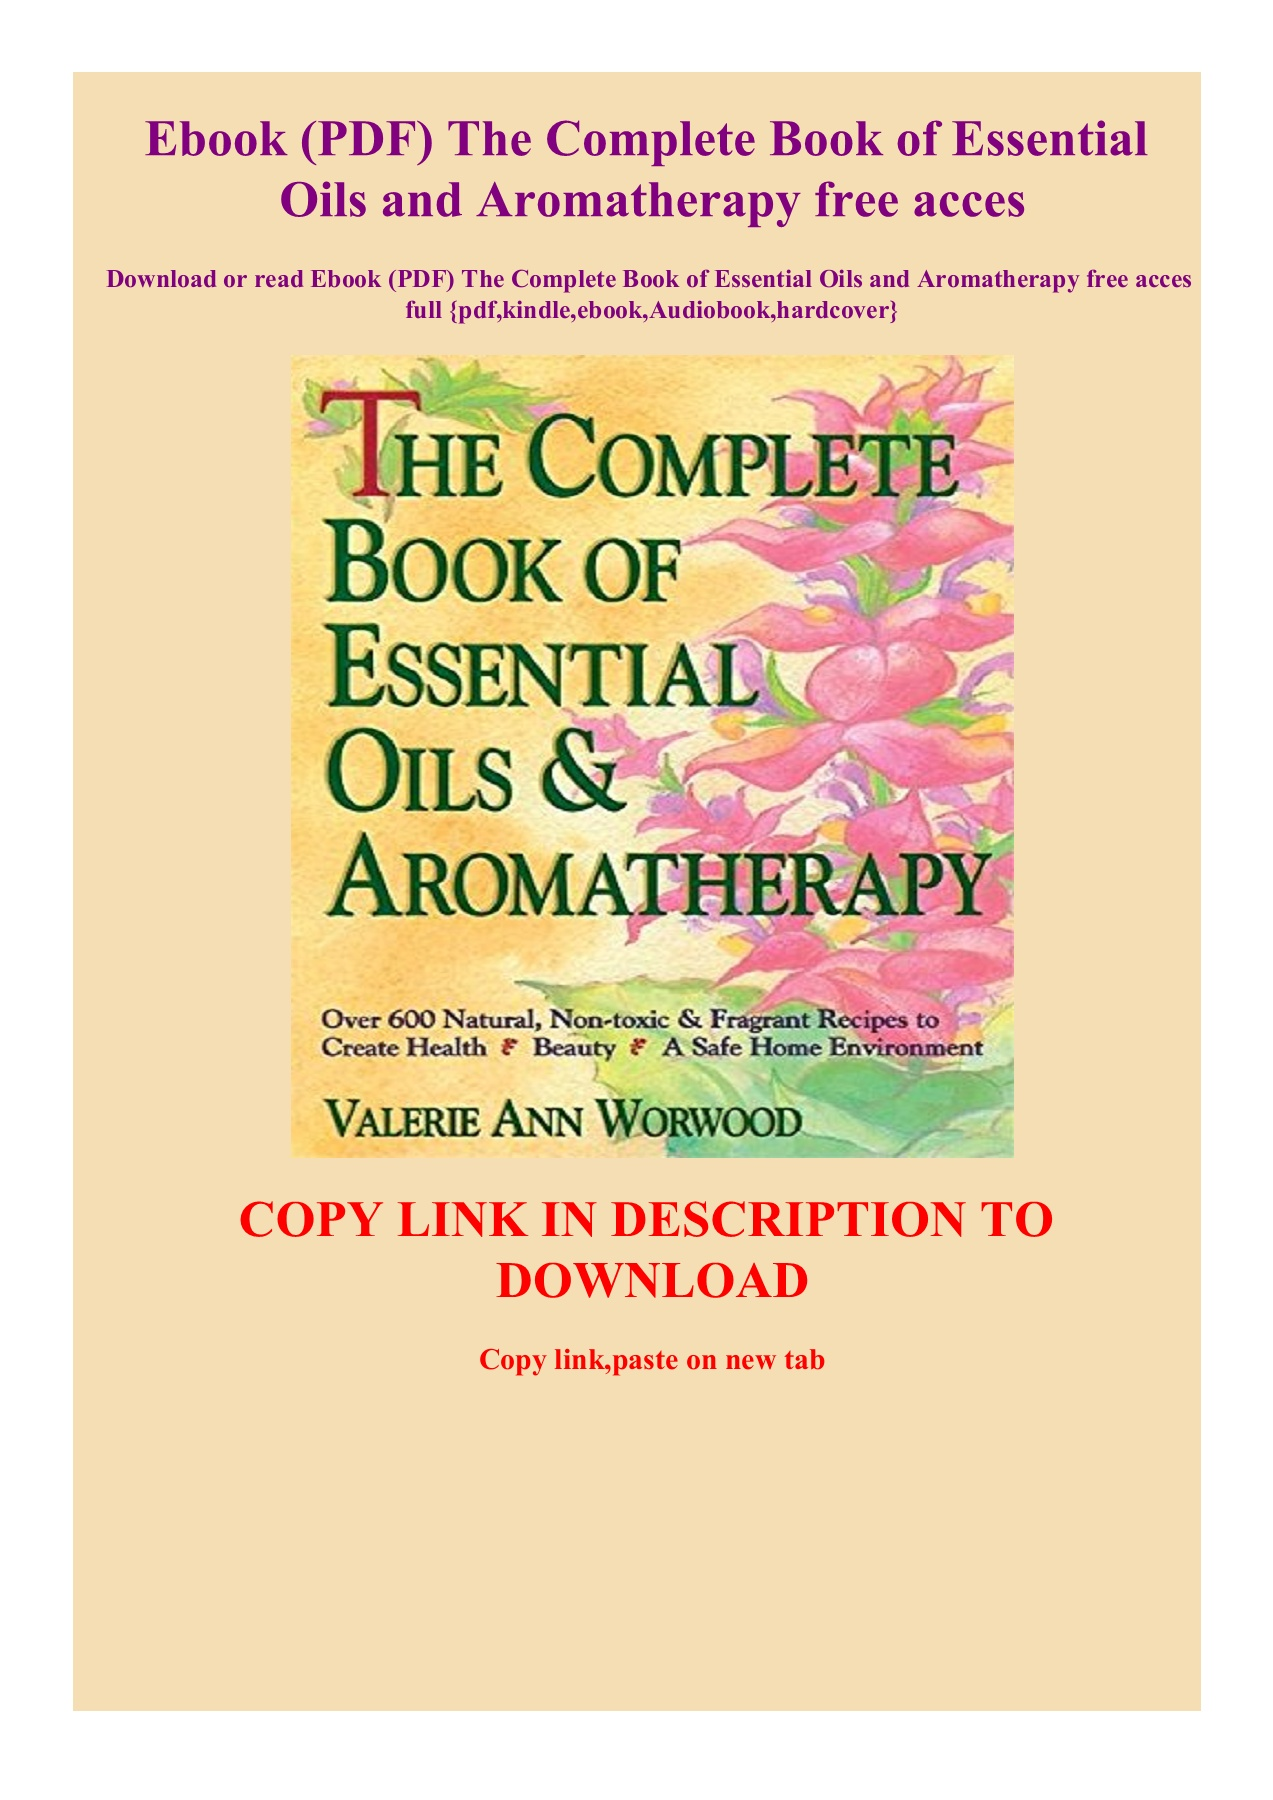 Ebook PDF The Complete Book of Essential Oils and Aromatherapy ...